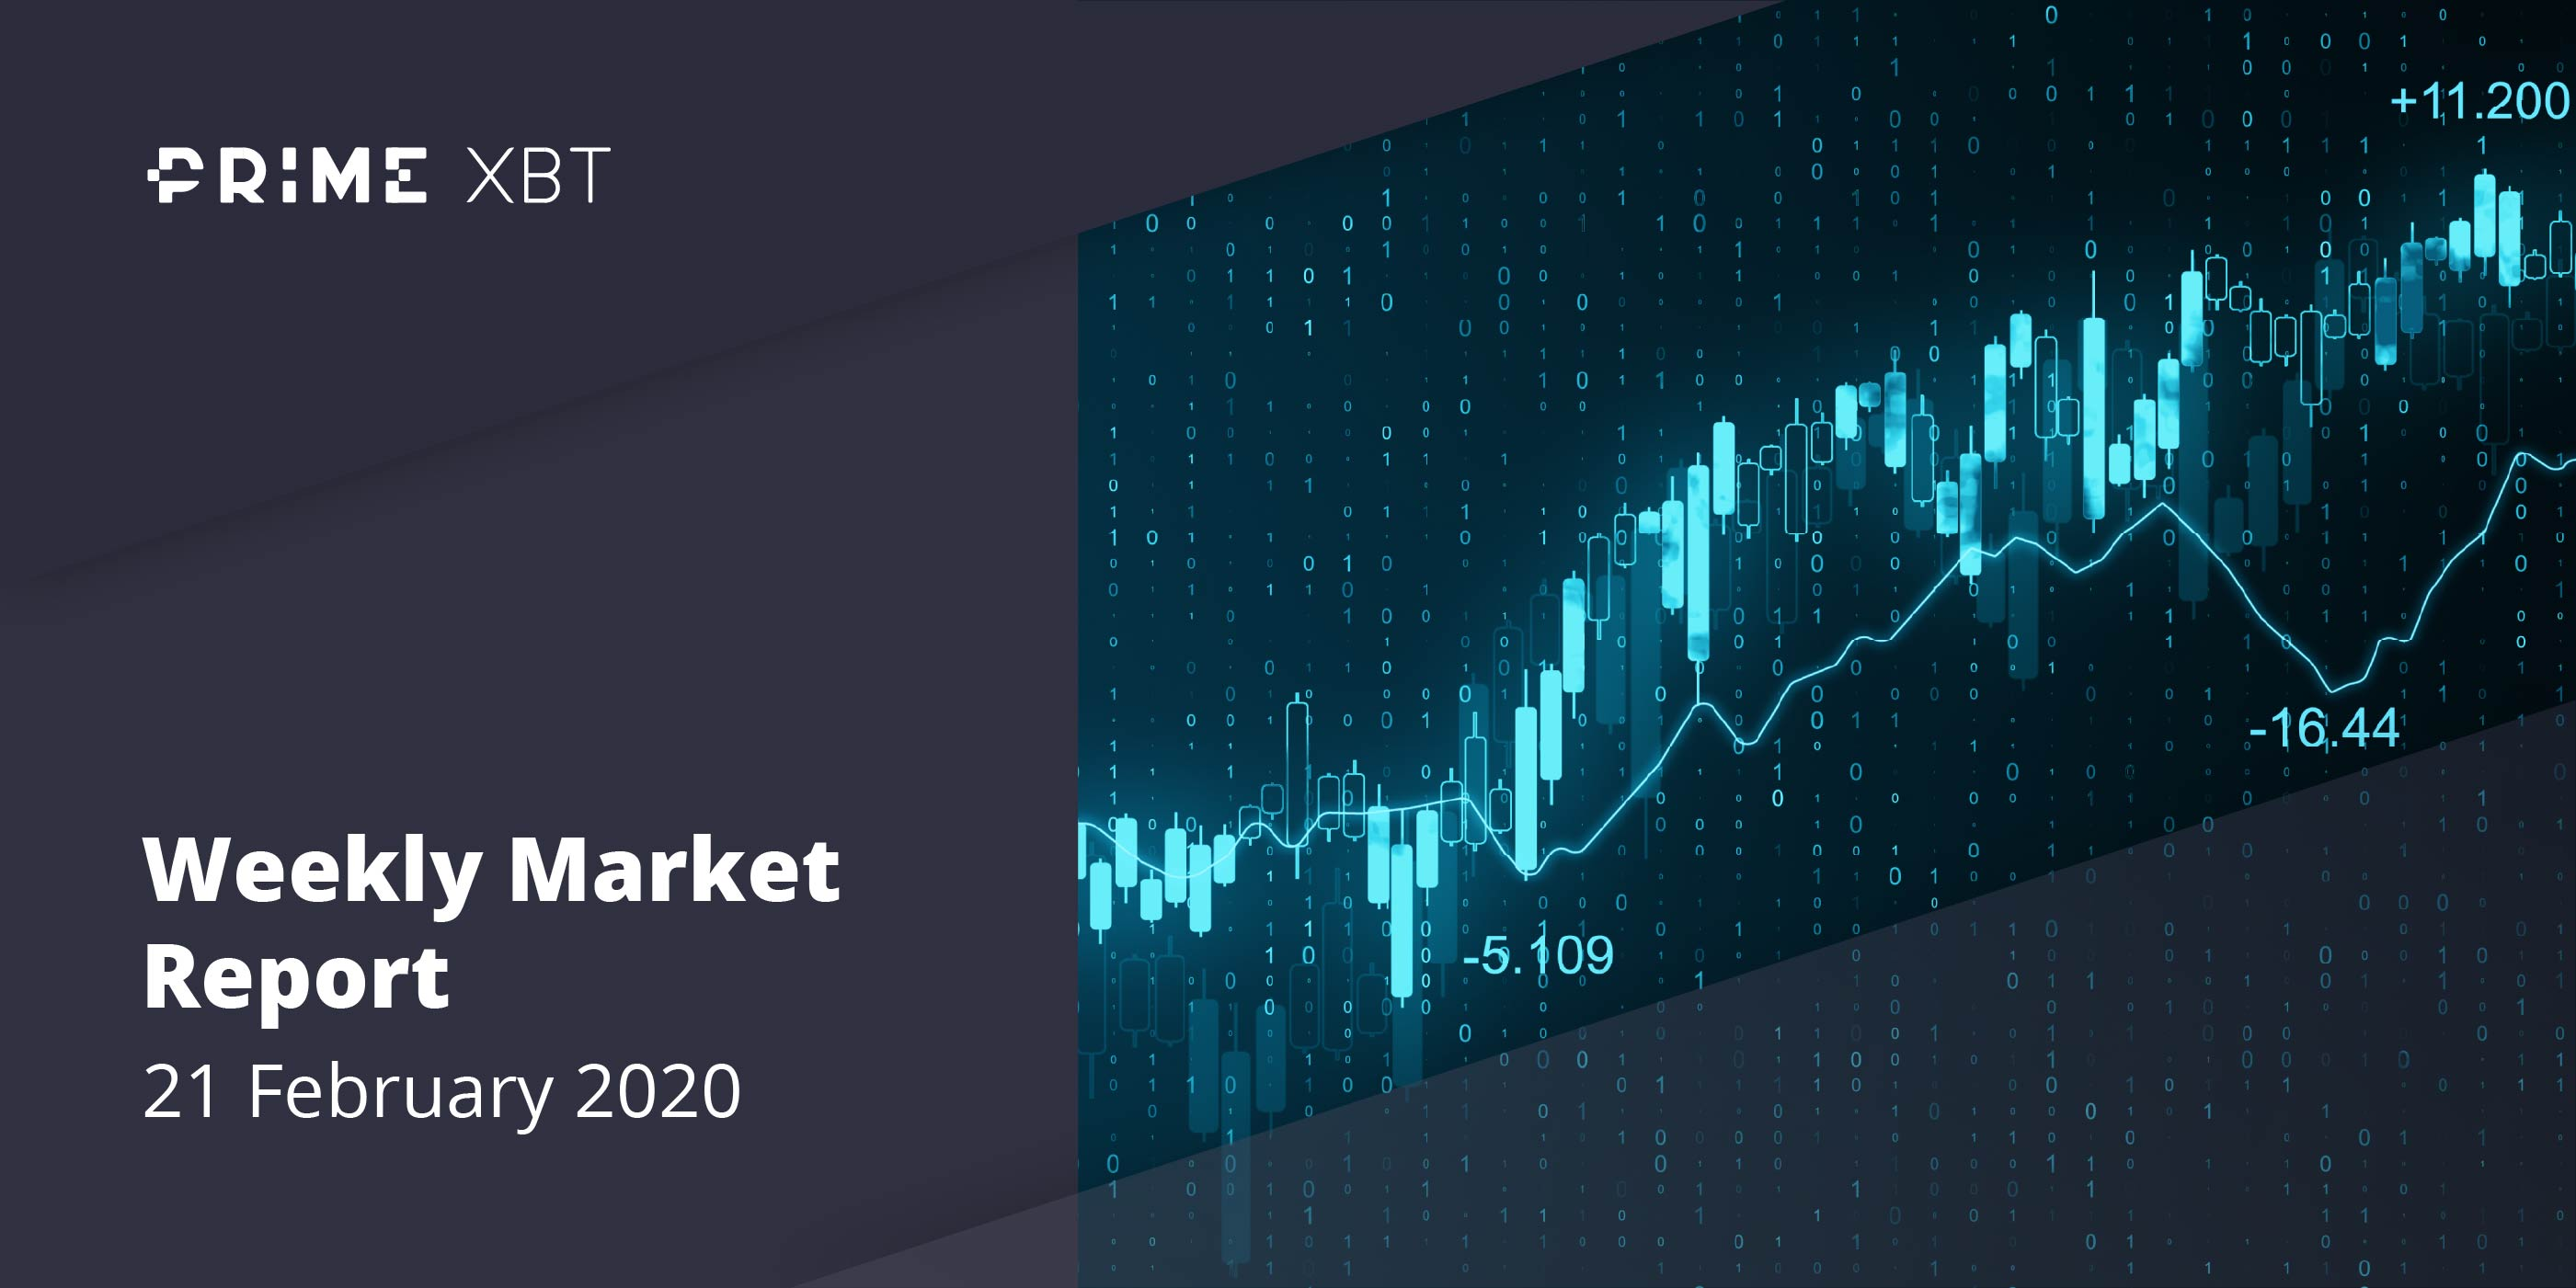 21.02.20 - Crypto Market Report: Bitcoin's First Red Week, DeFi Under Pressure, But BTC Volume Keep Rising with Institutional Interest